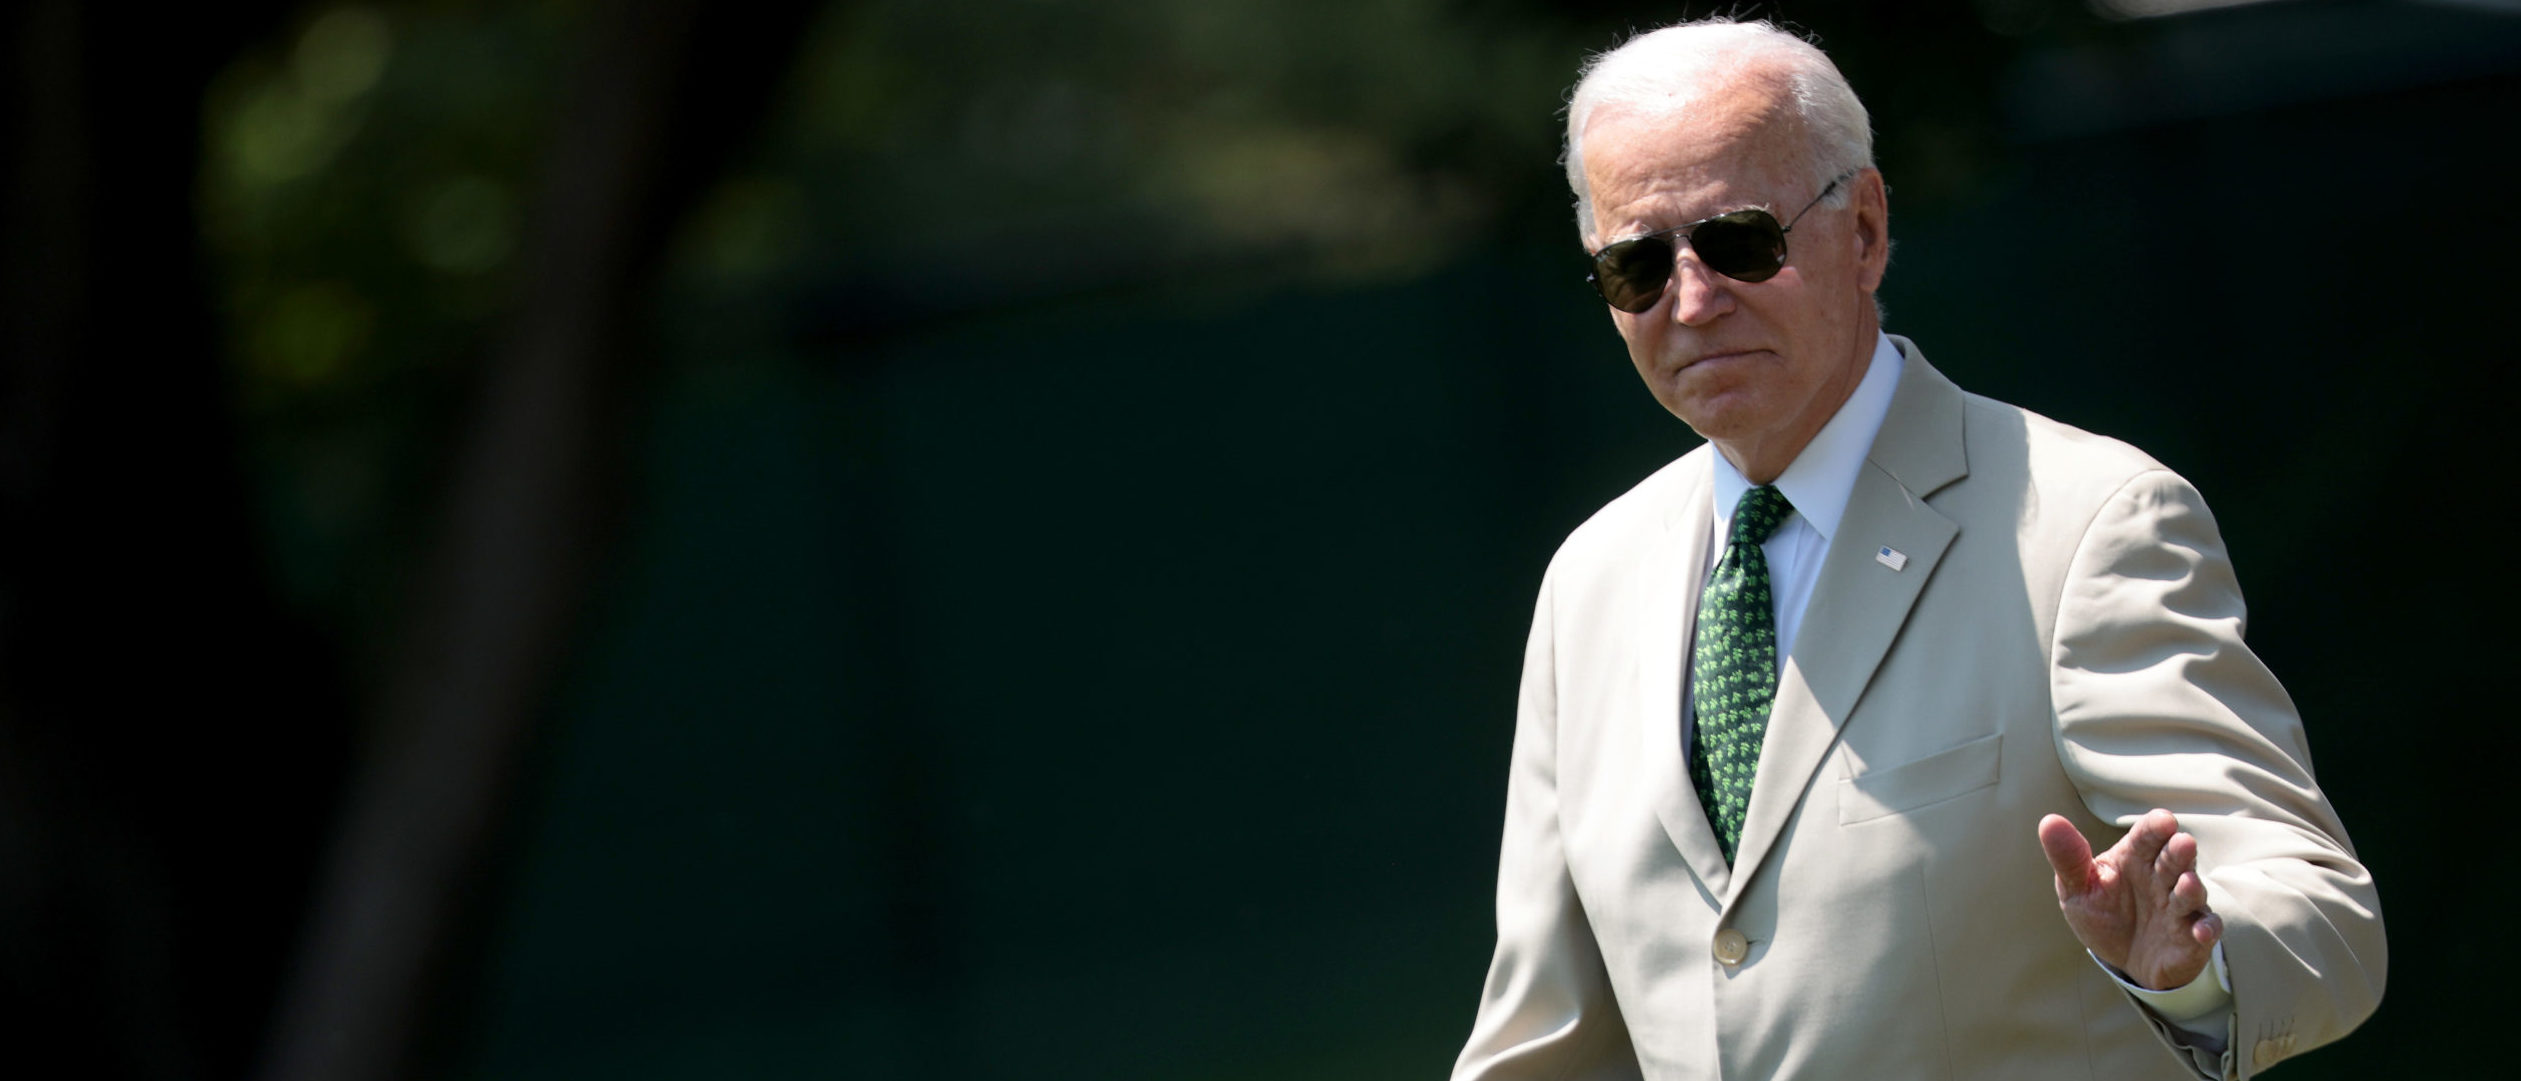 Biden Has Spent More Time Away From White House Than Trump Did In His First Year, Analysis Finds